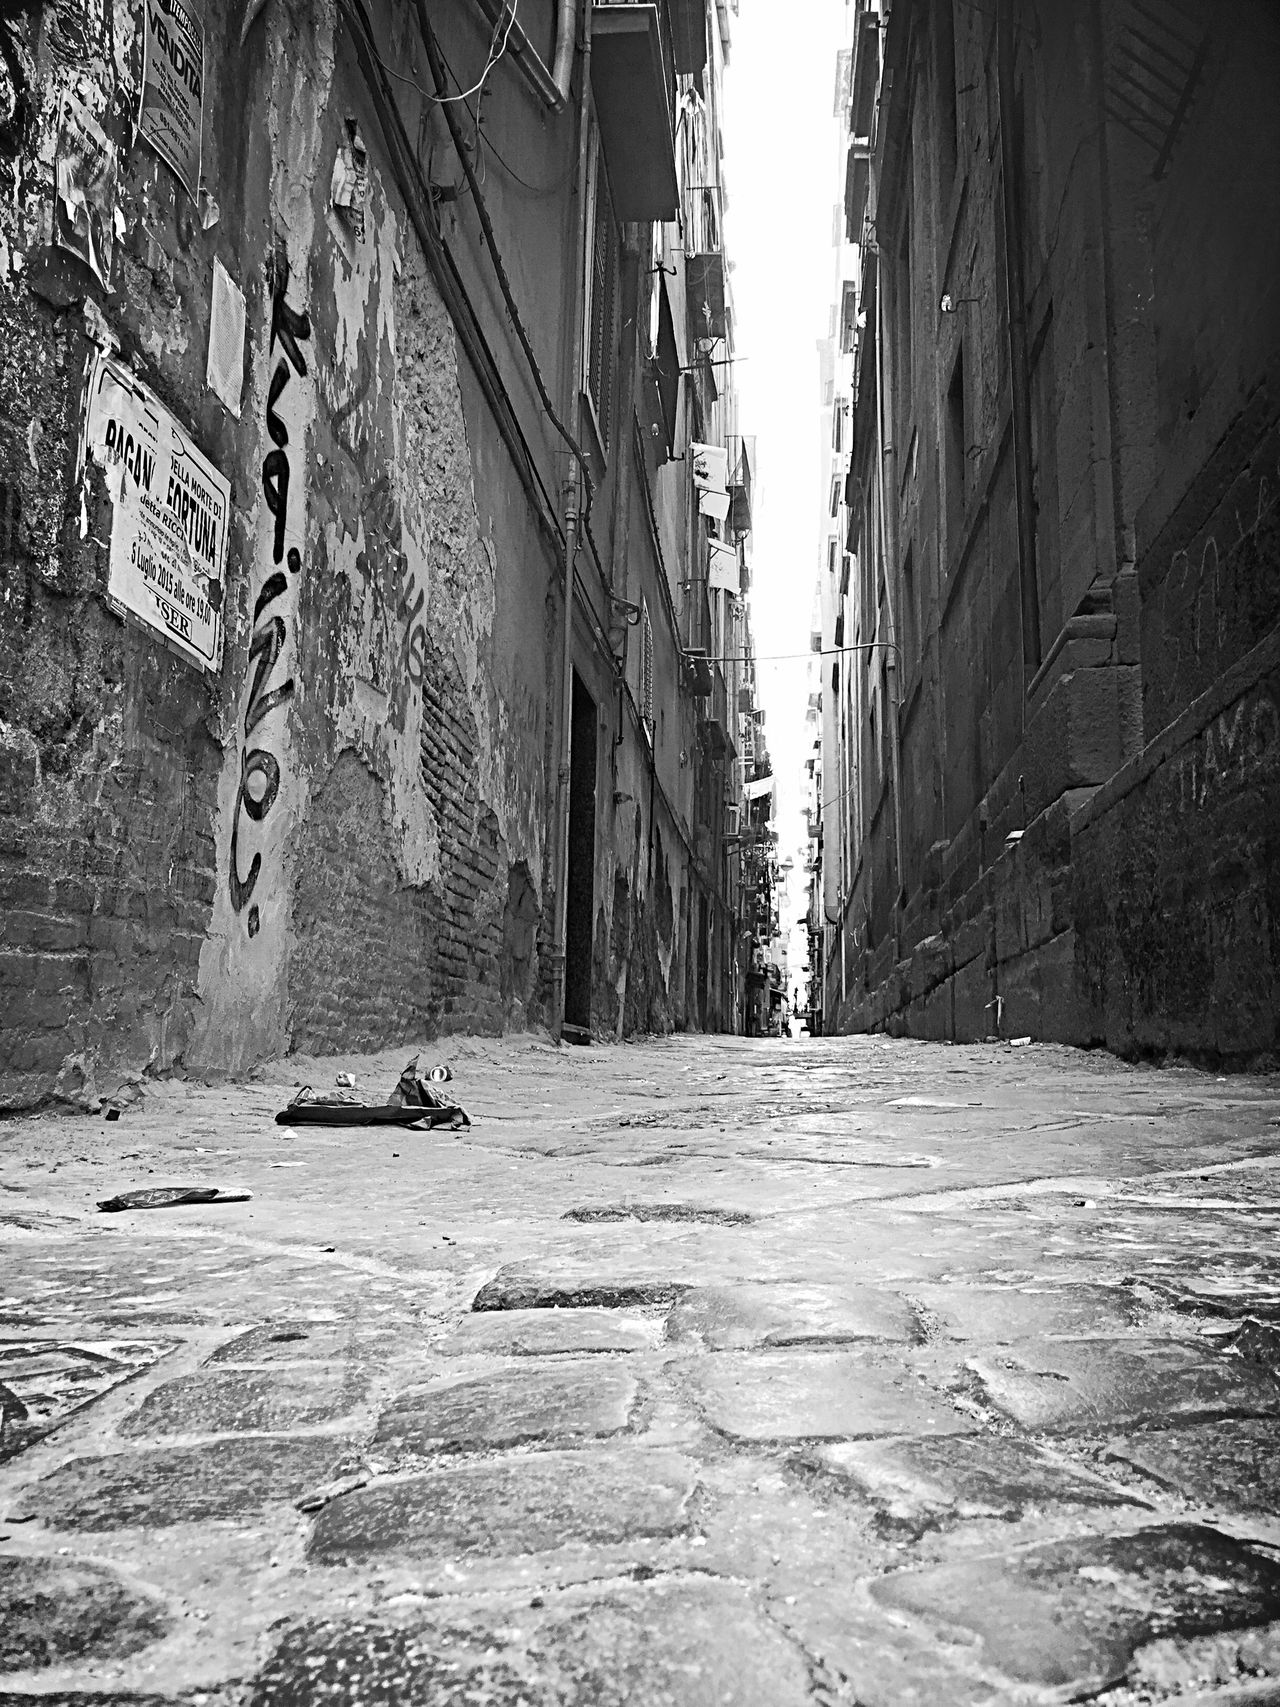 Napoli Scorciditalia Blacj And White Naples, Italy